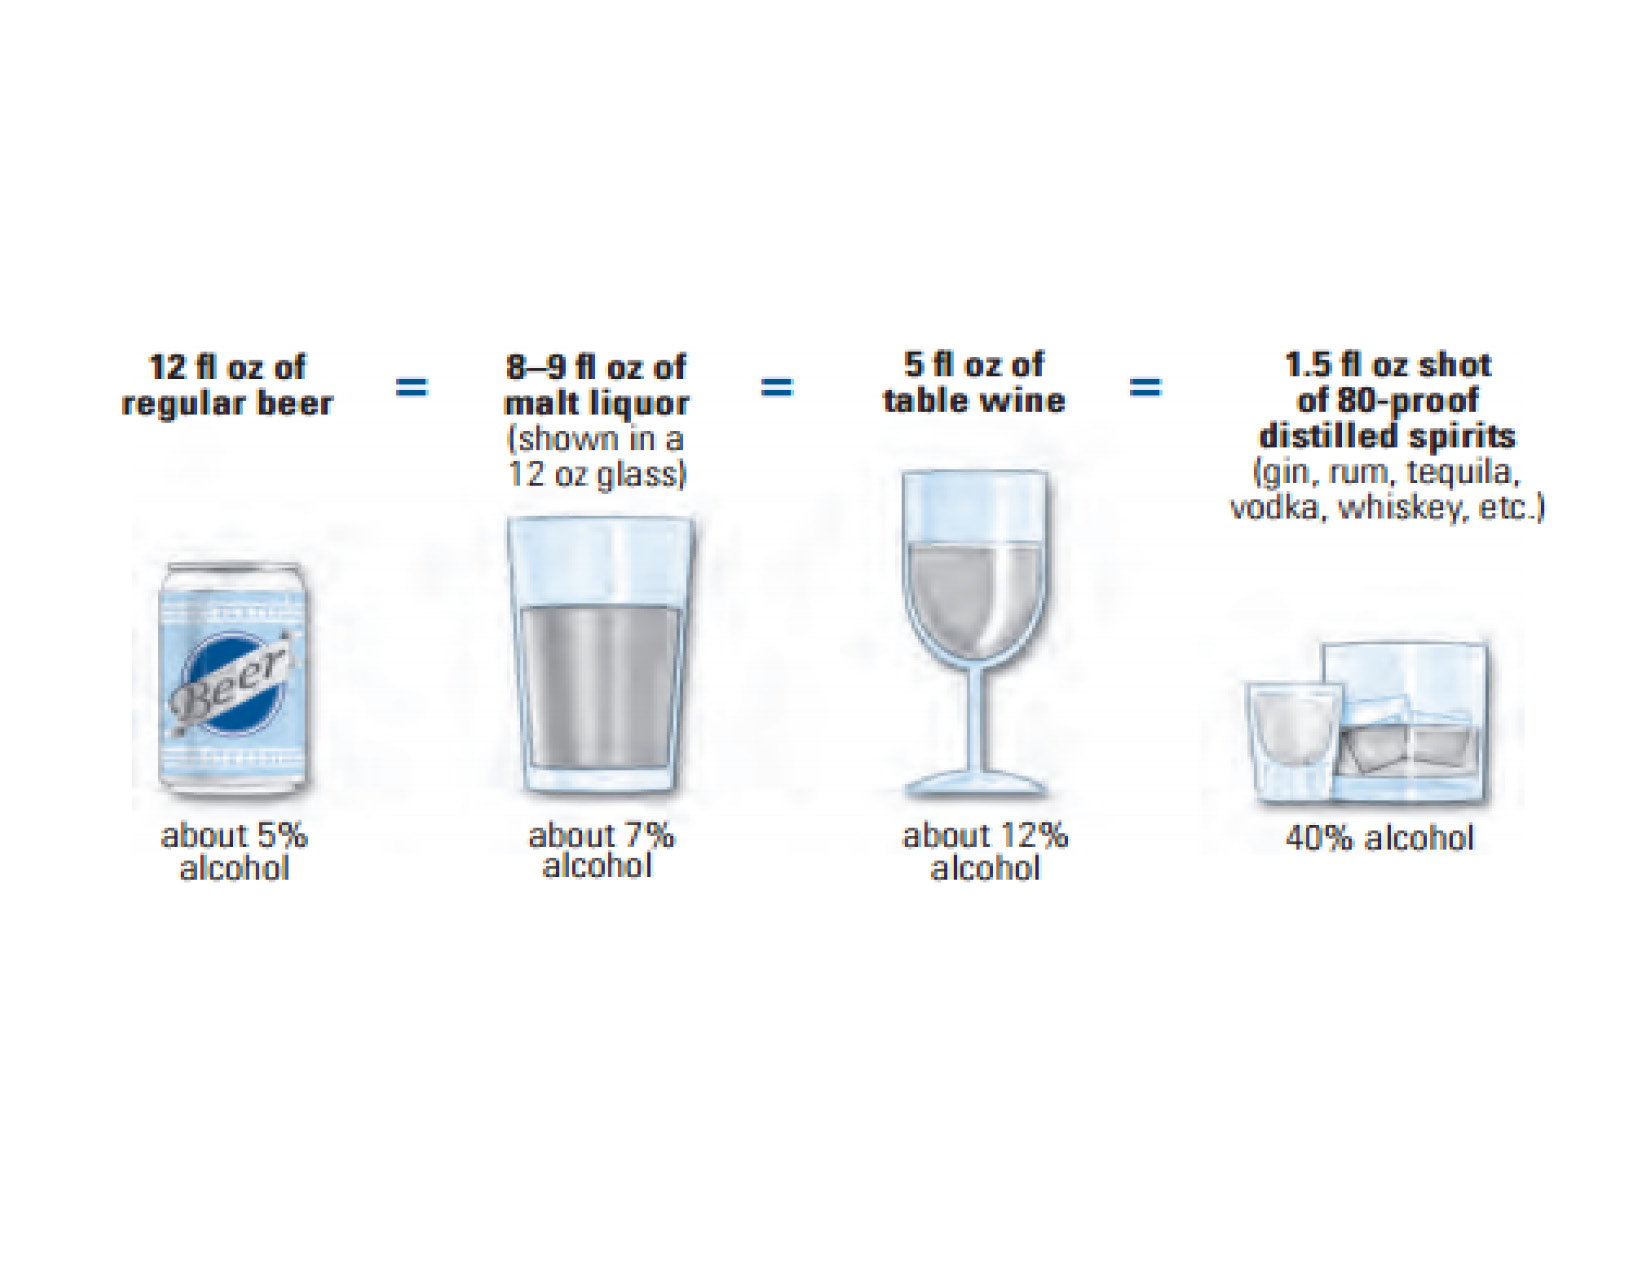 How long does it take your body to proccess one standard drink